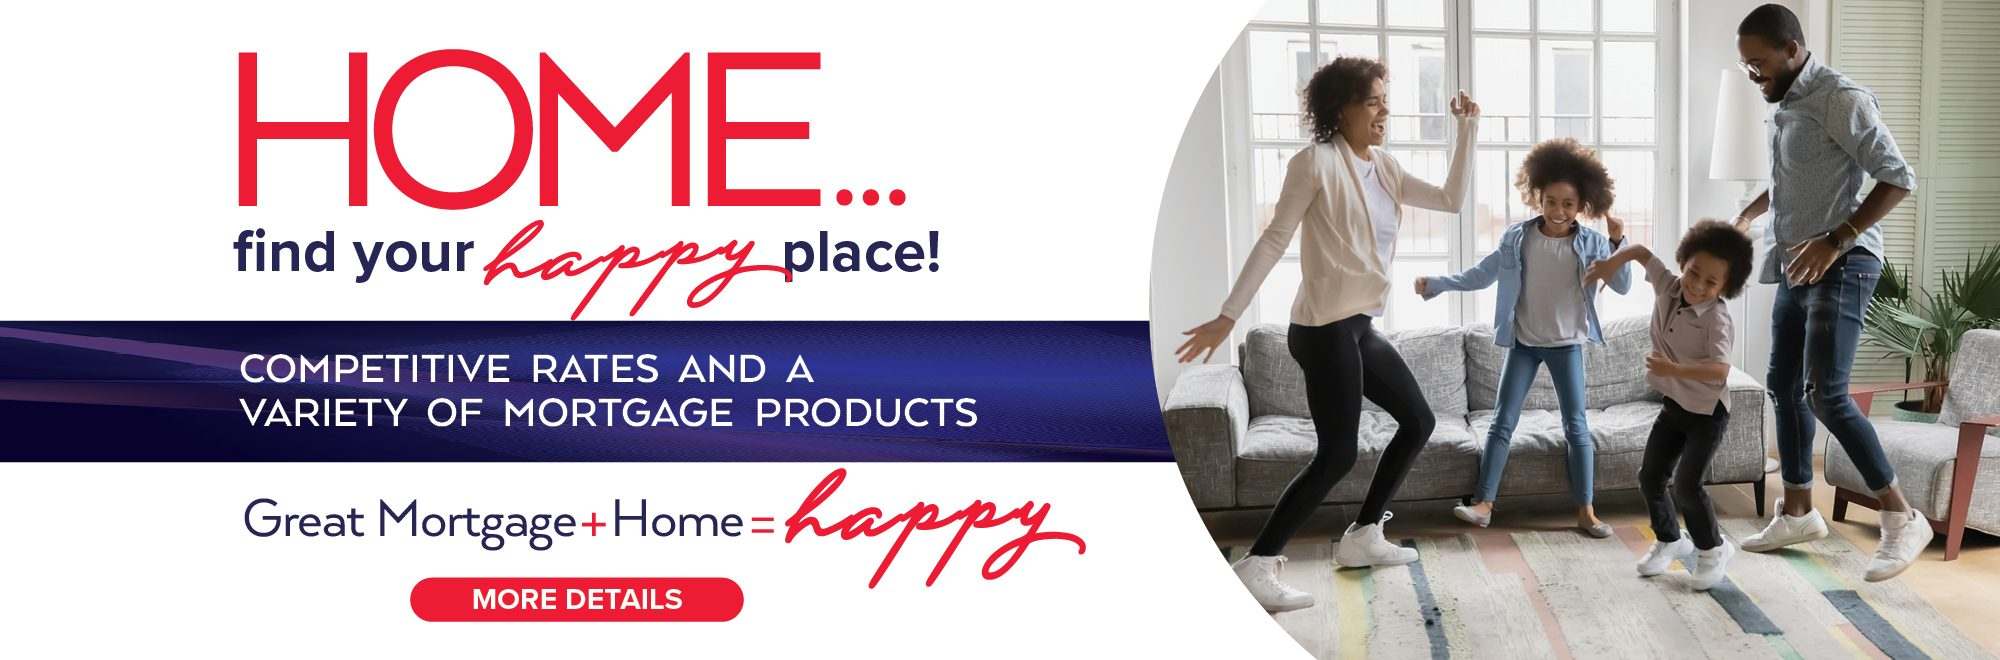 Home: Find your happy place with competitive rates and a variety of mortgage products